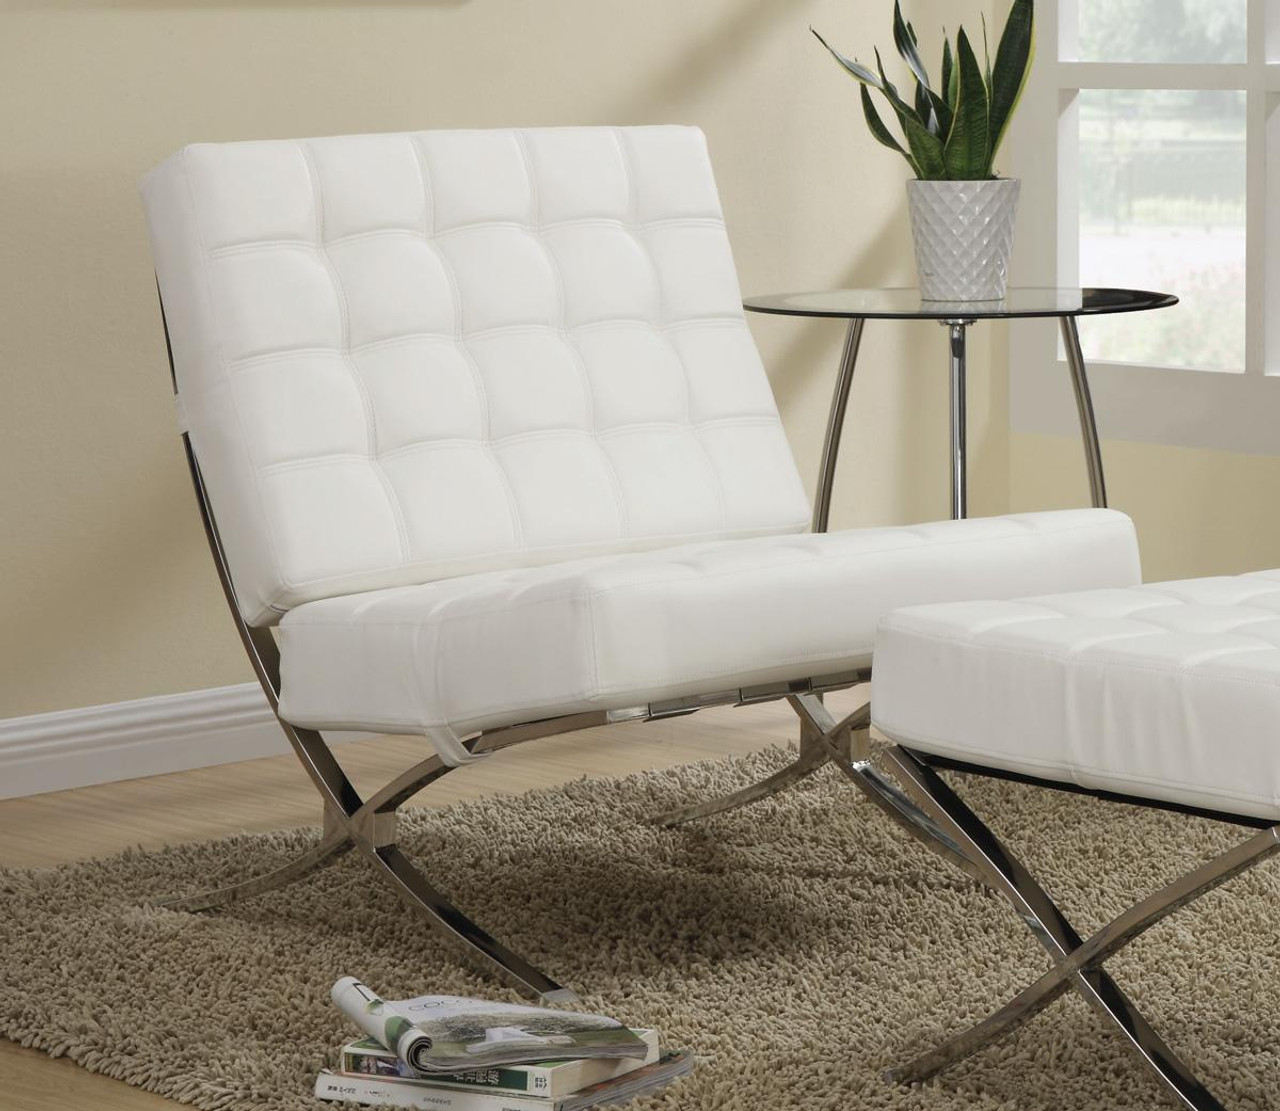 Stupendous Jacksen White Leather Accent Chair And Ottoman Ibusinesslaw Wood Chair Design Ideas Ibusinesslaworg